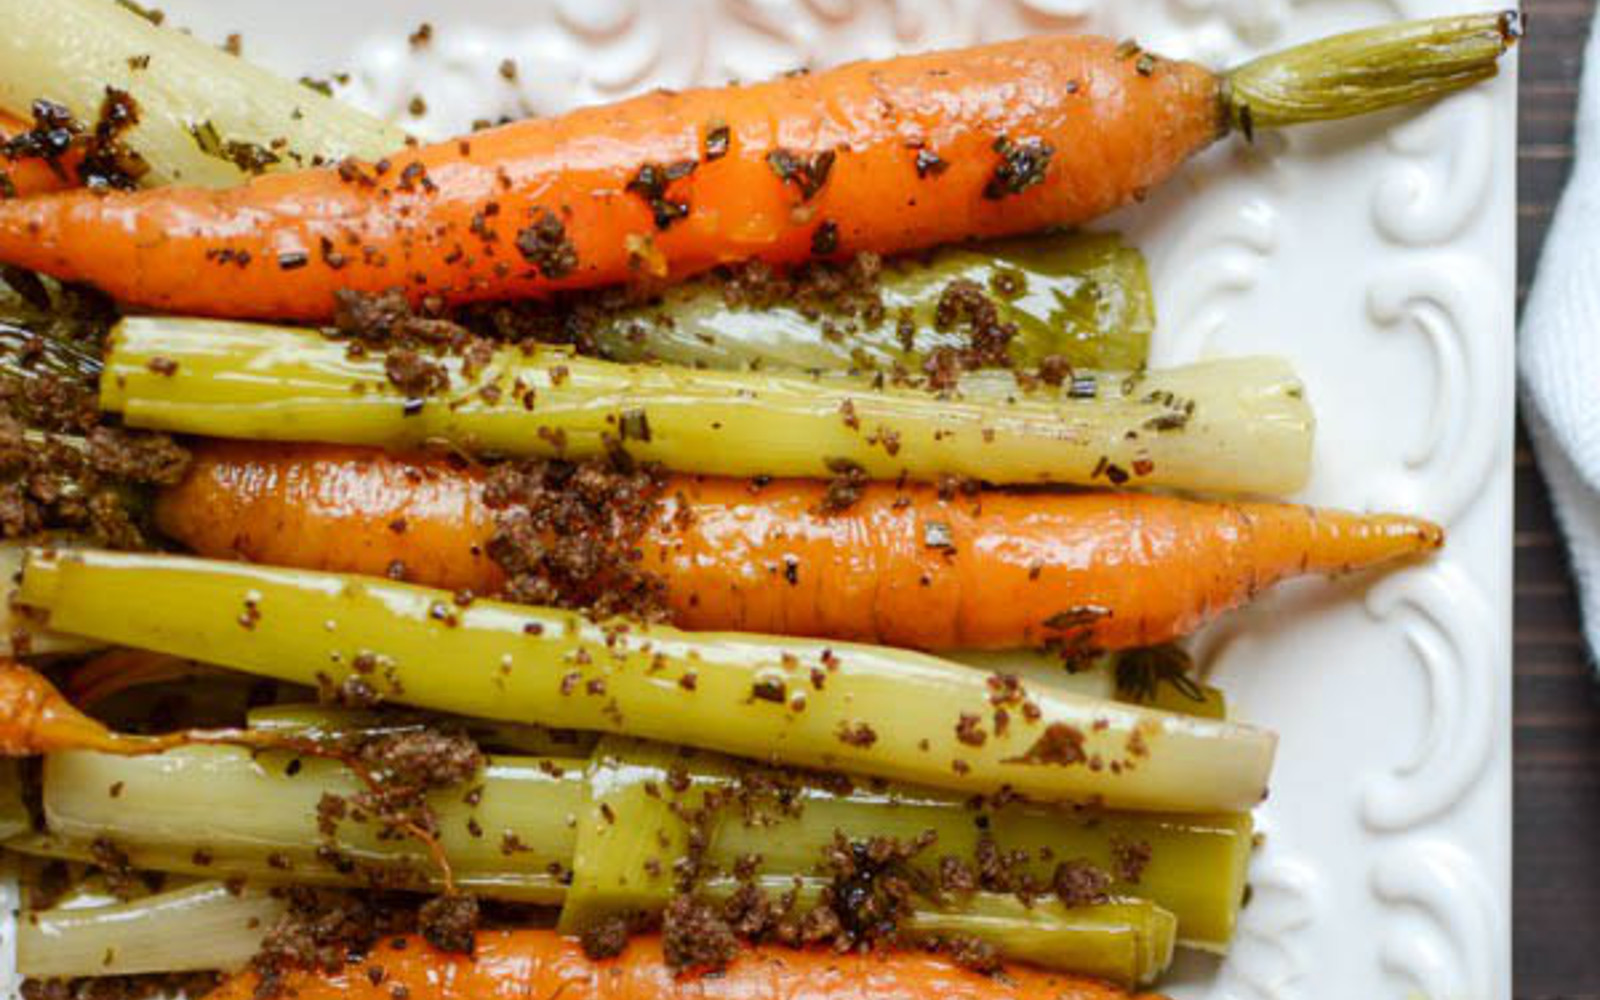 Braised Leeks and Carrots With Toasted Crumb 2